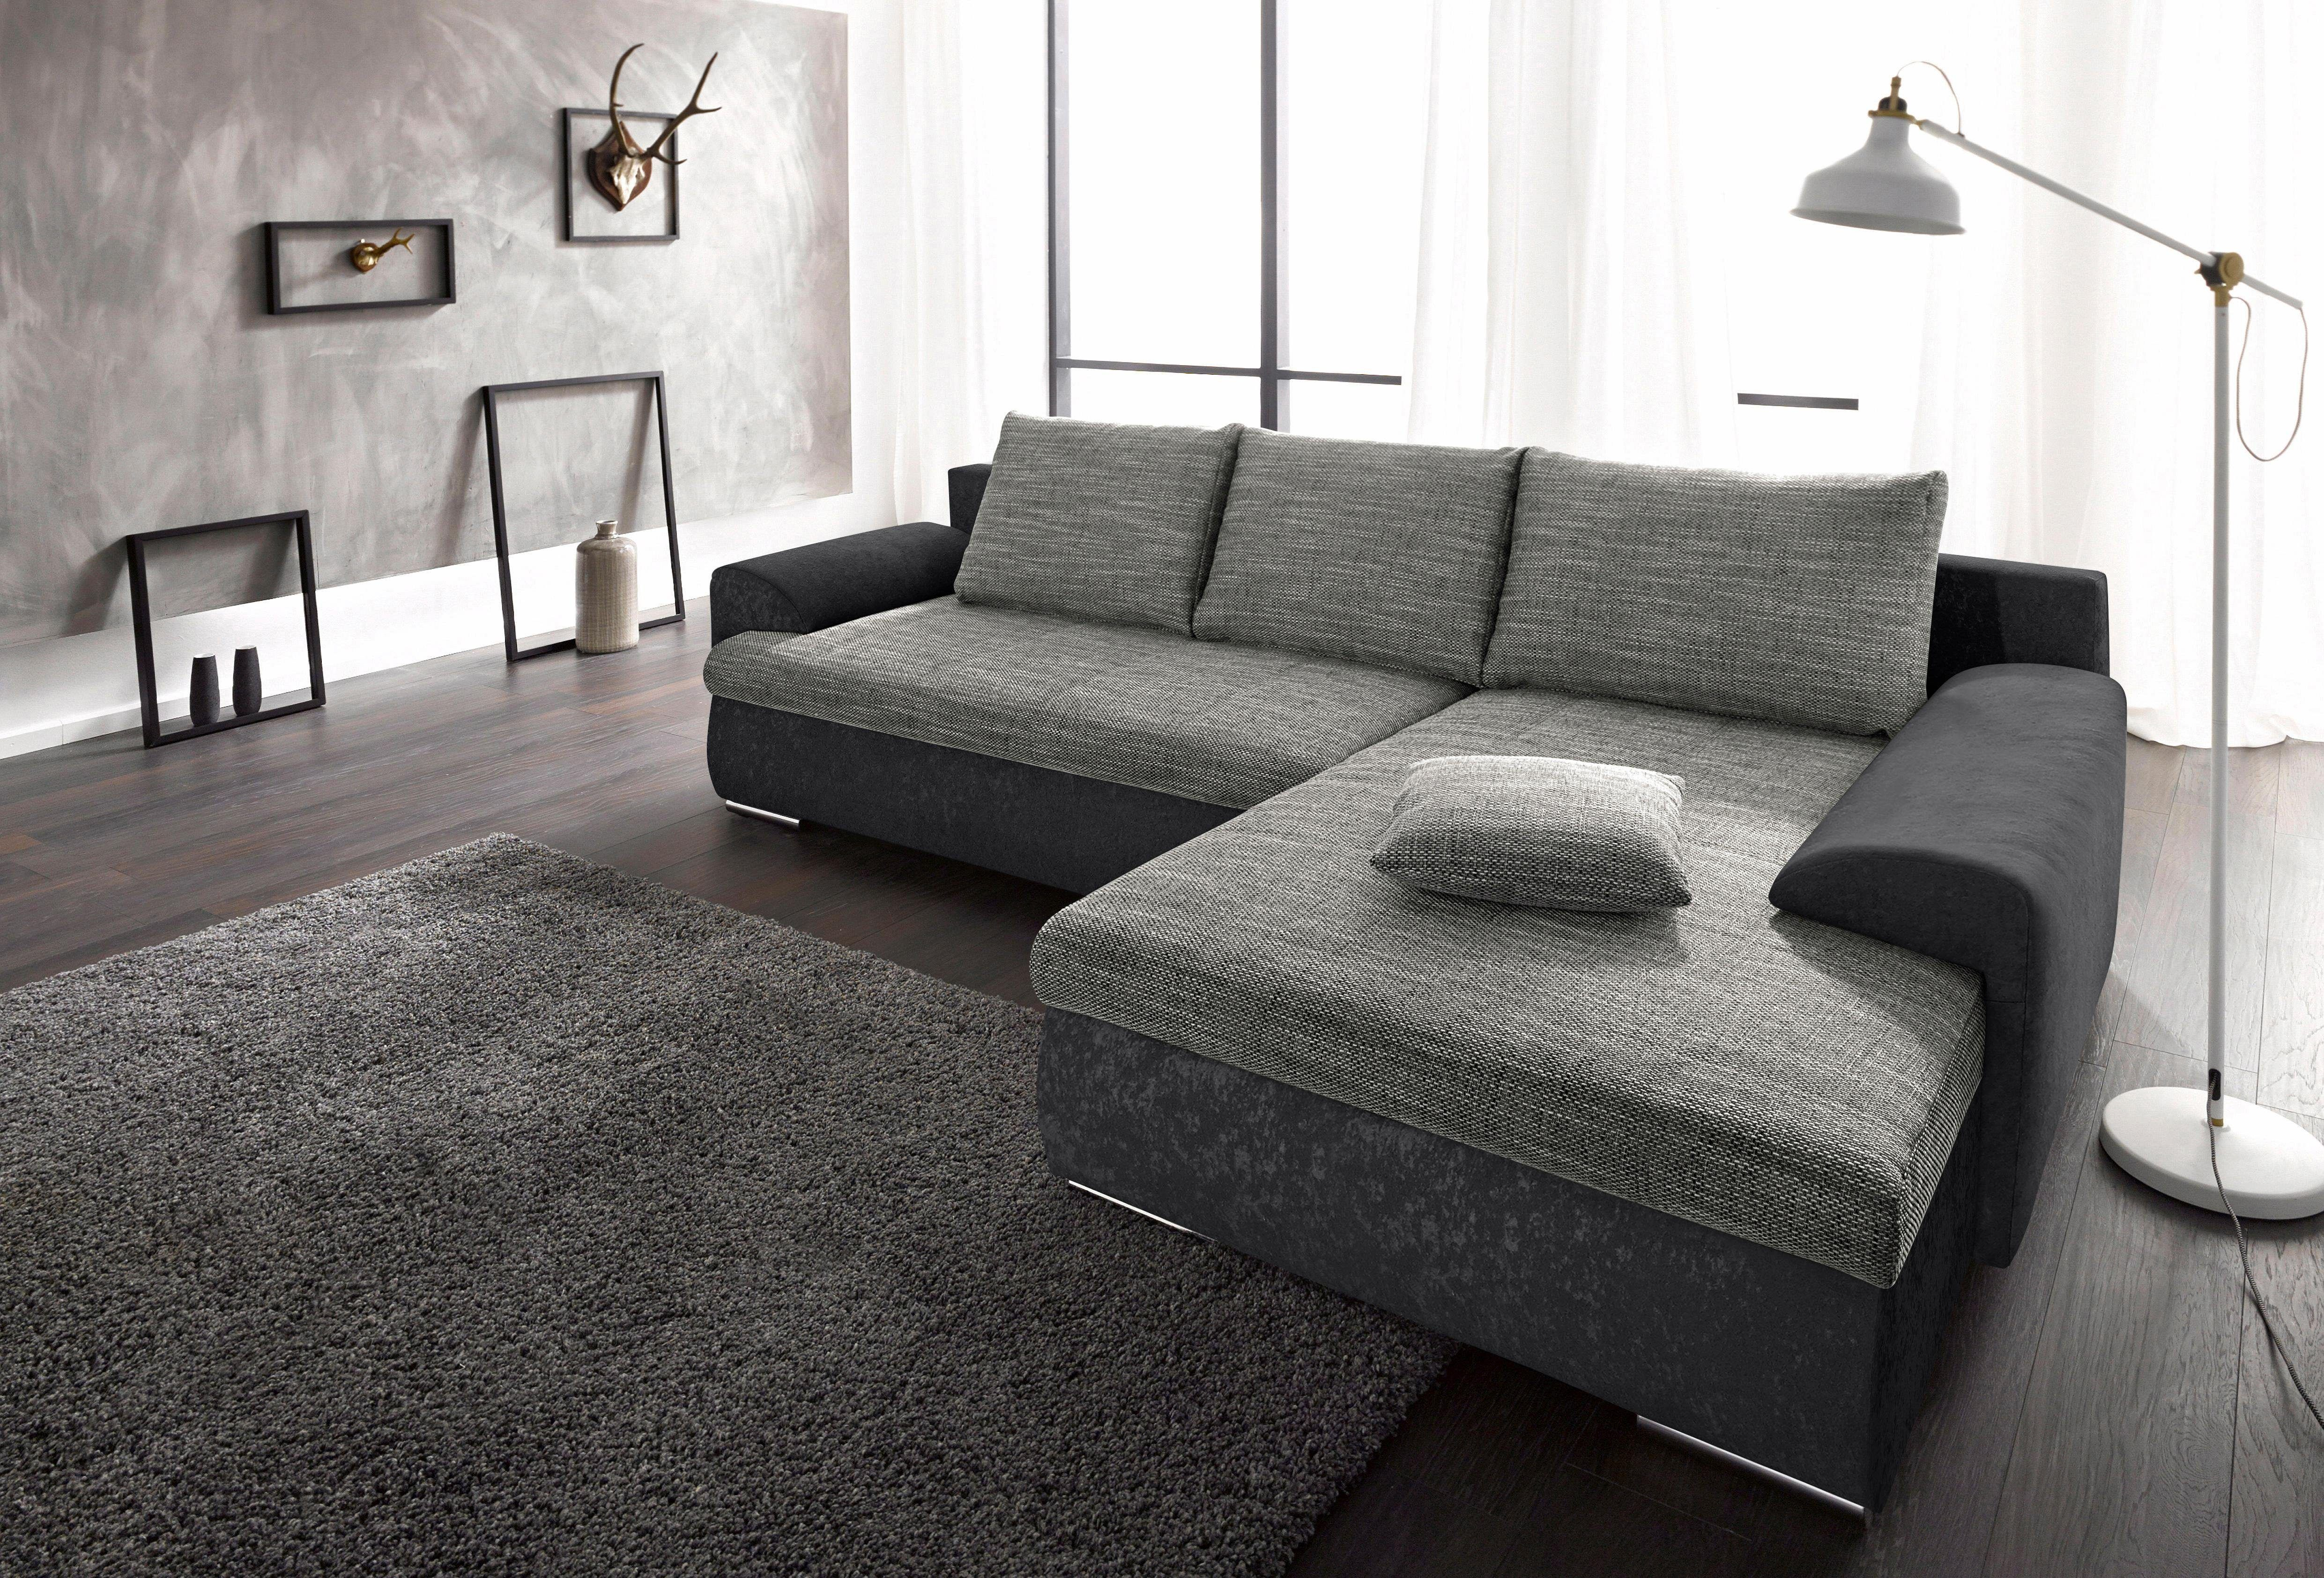 Pin by ladendirekt on Sofas & Couches